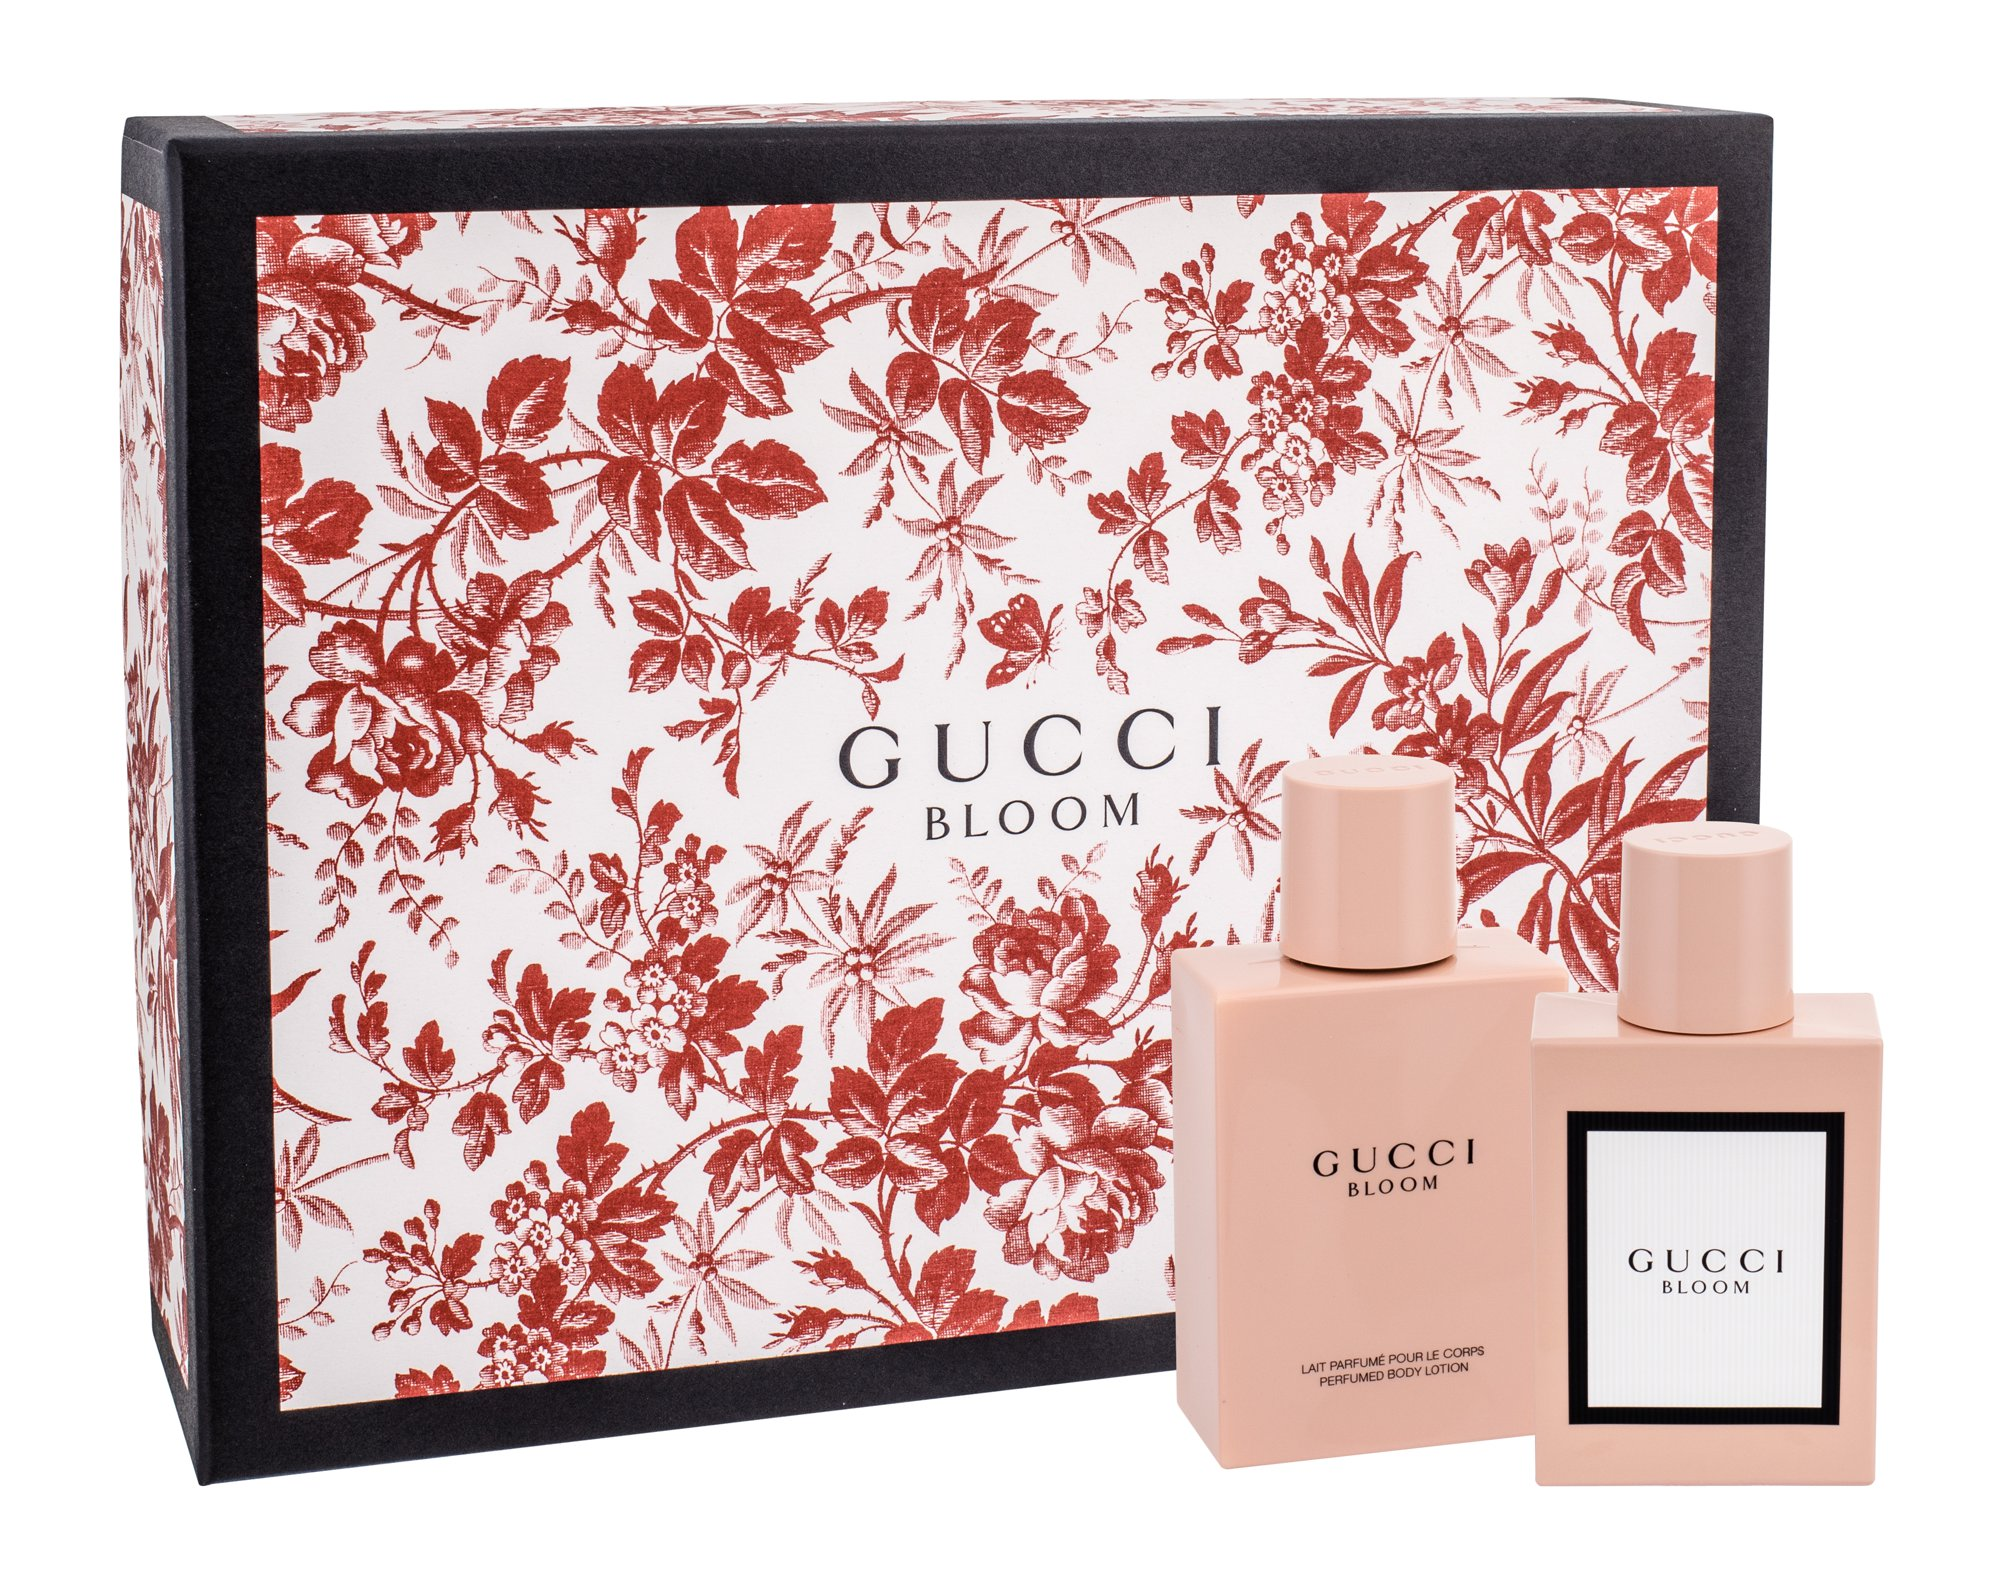 Gucci Bloom, parfumovaná voda 50 ml + telové mlieko 100 ml